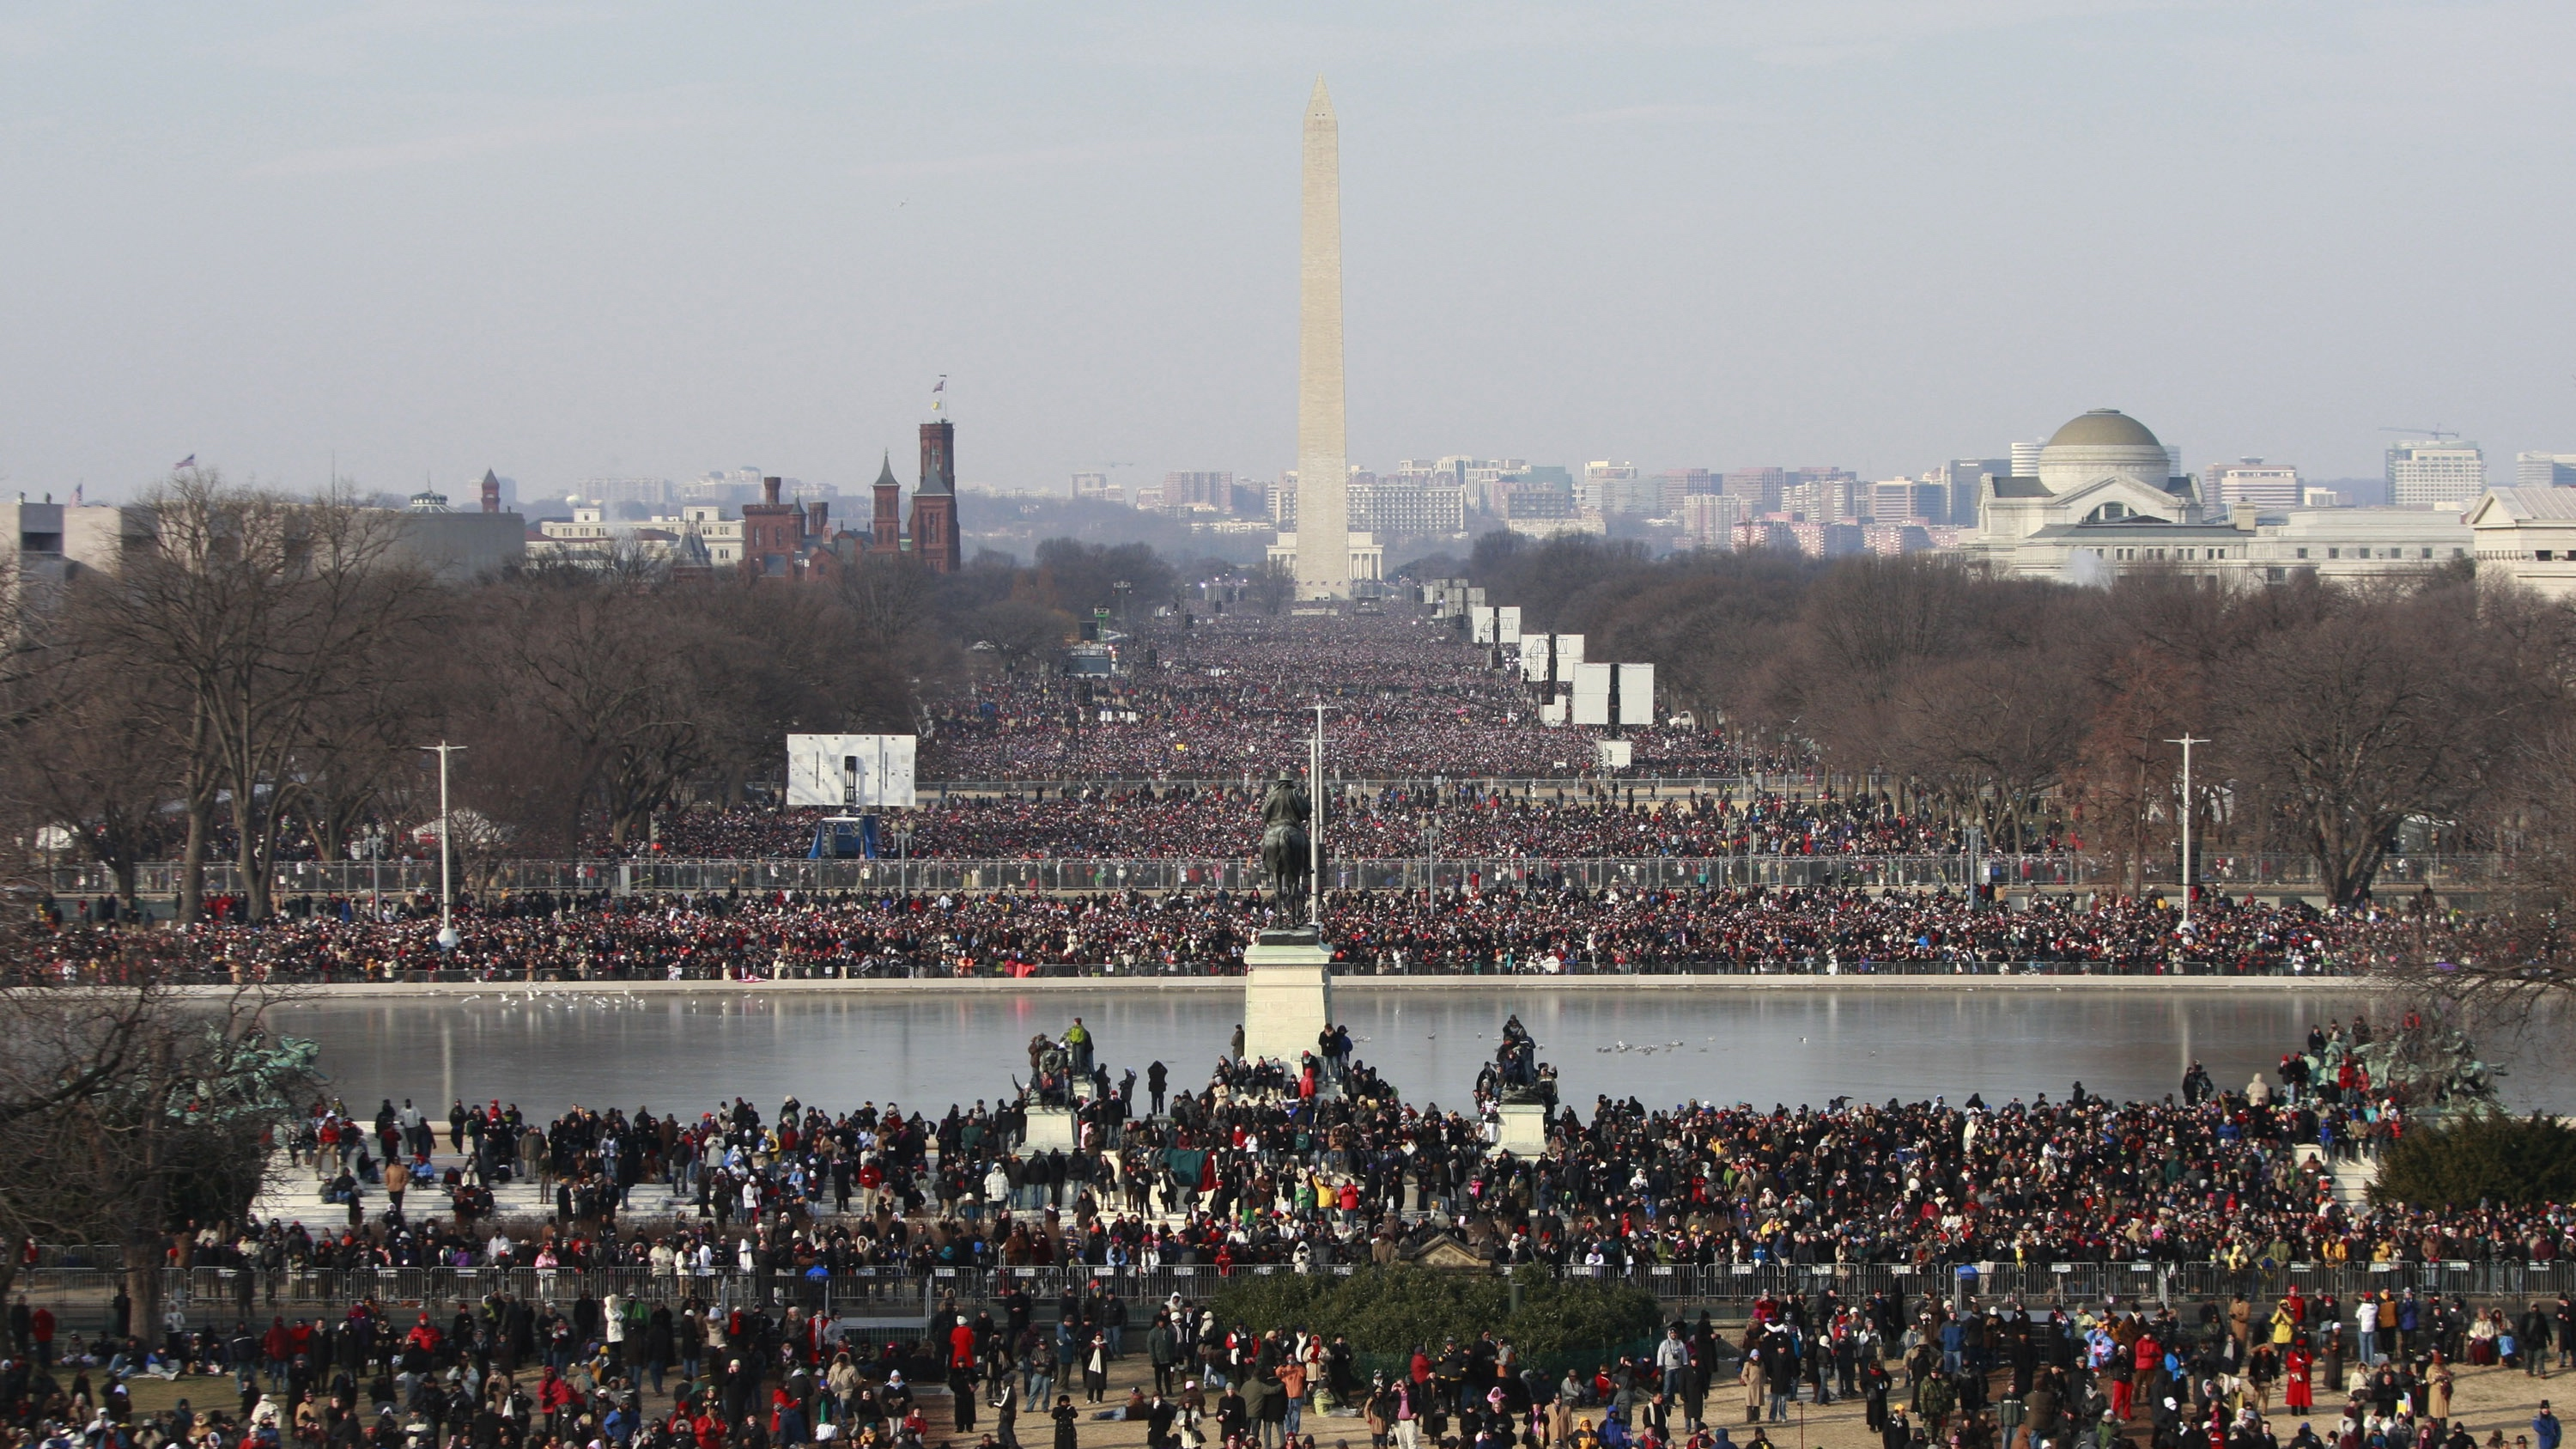 The National Mall is seen in Washington prior to the inauguration ceremony in Washington